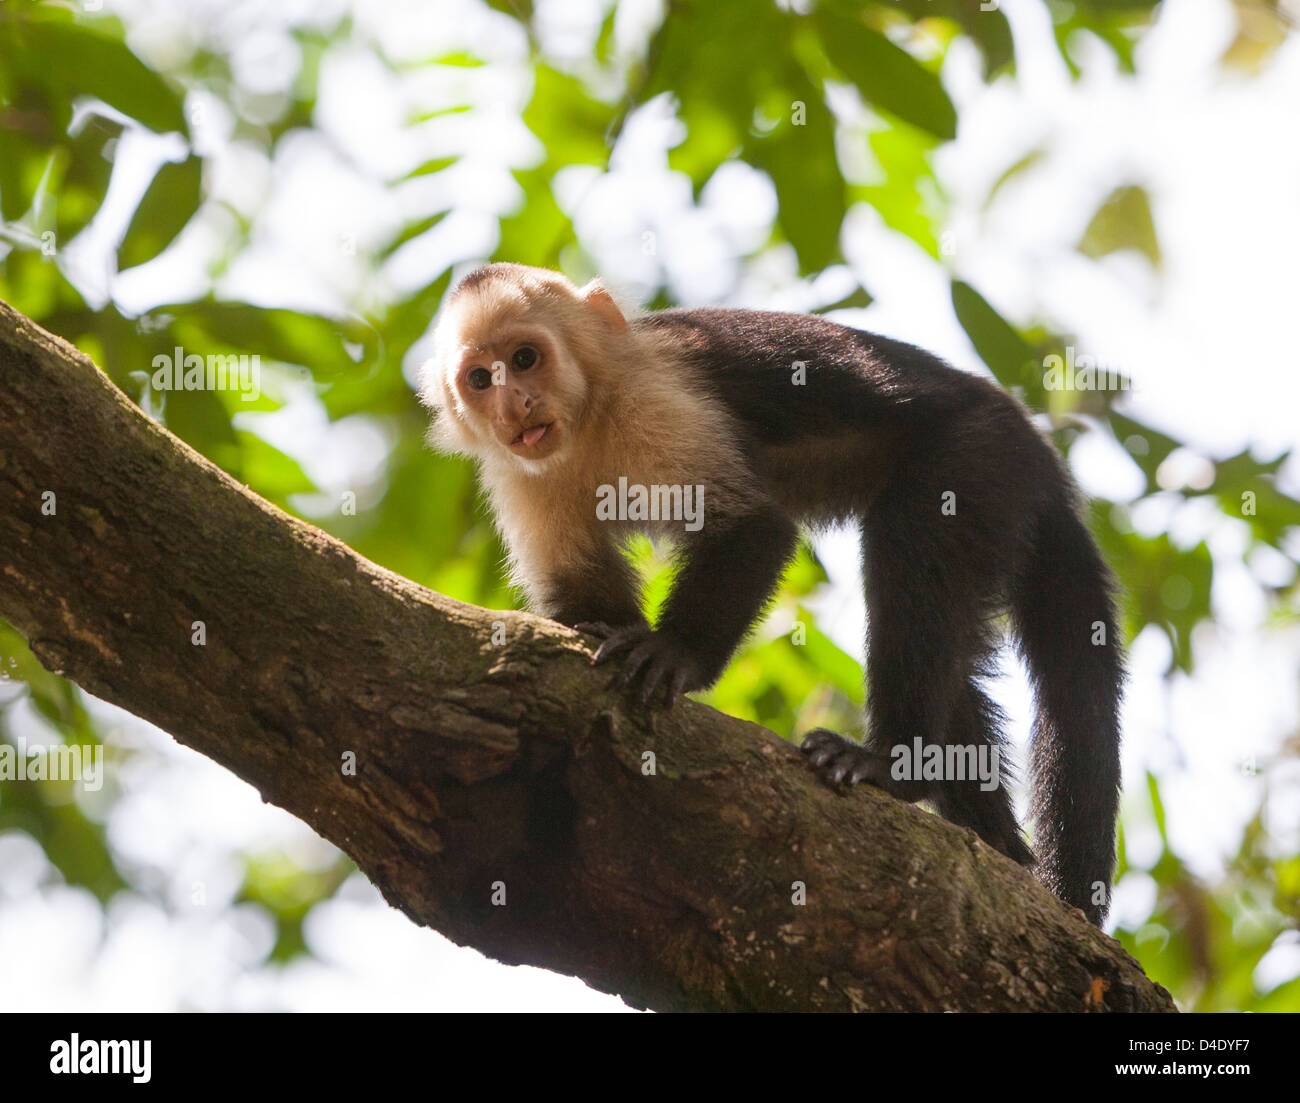 White faced monkey in the Manuel Antonio area of Costa Rica - Stock Image